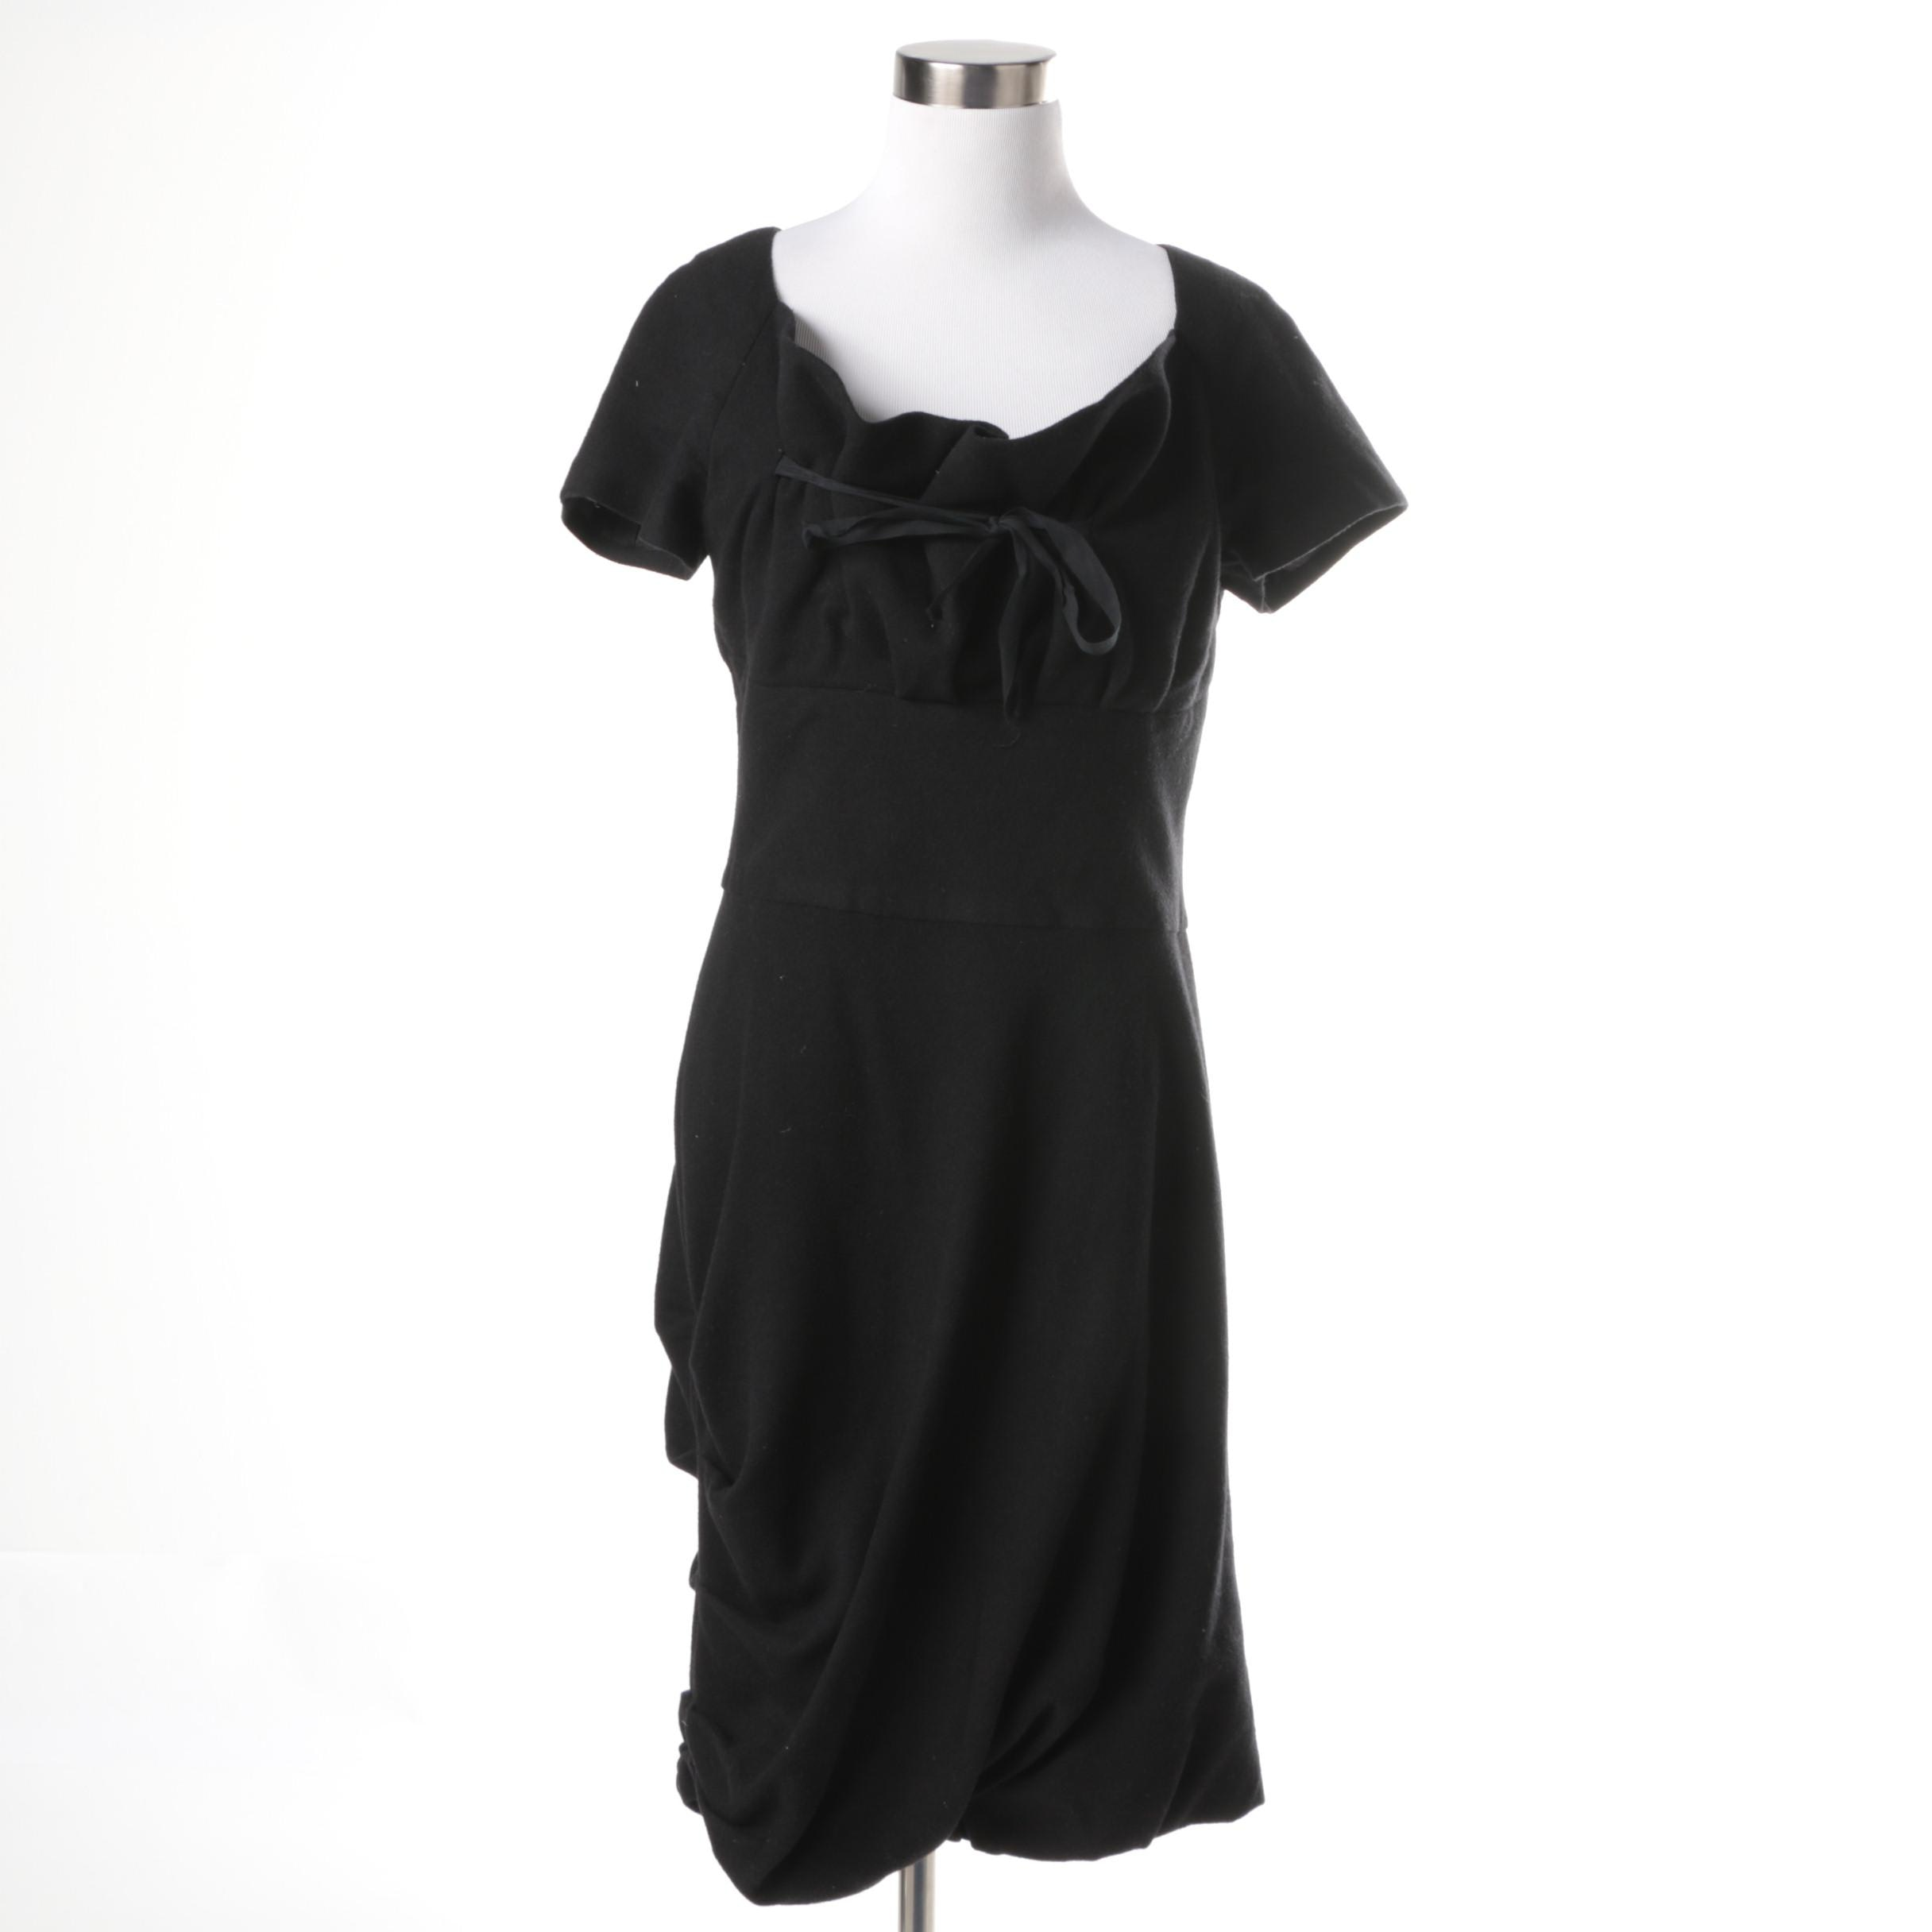 Vera Wang Black Dress